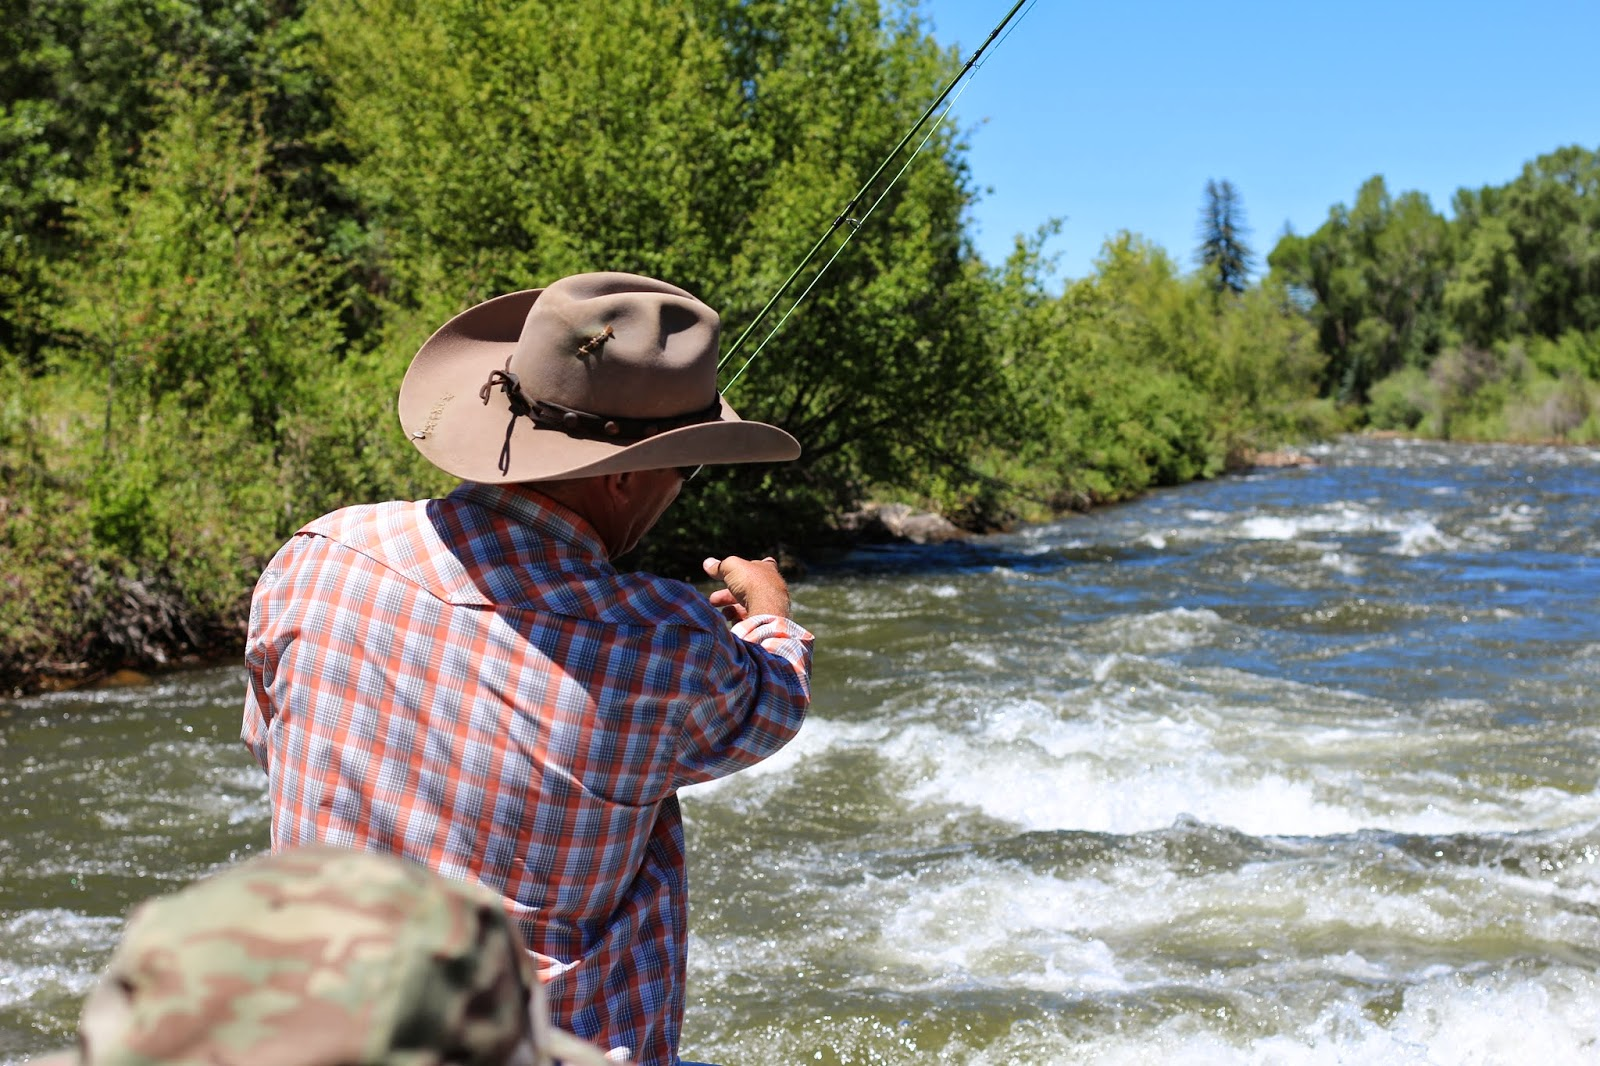 Roaring+fork+river+fly+fishing+with+Jay+Scott+Outdoors+9.JPG